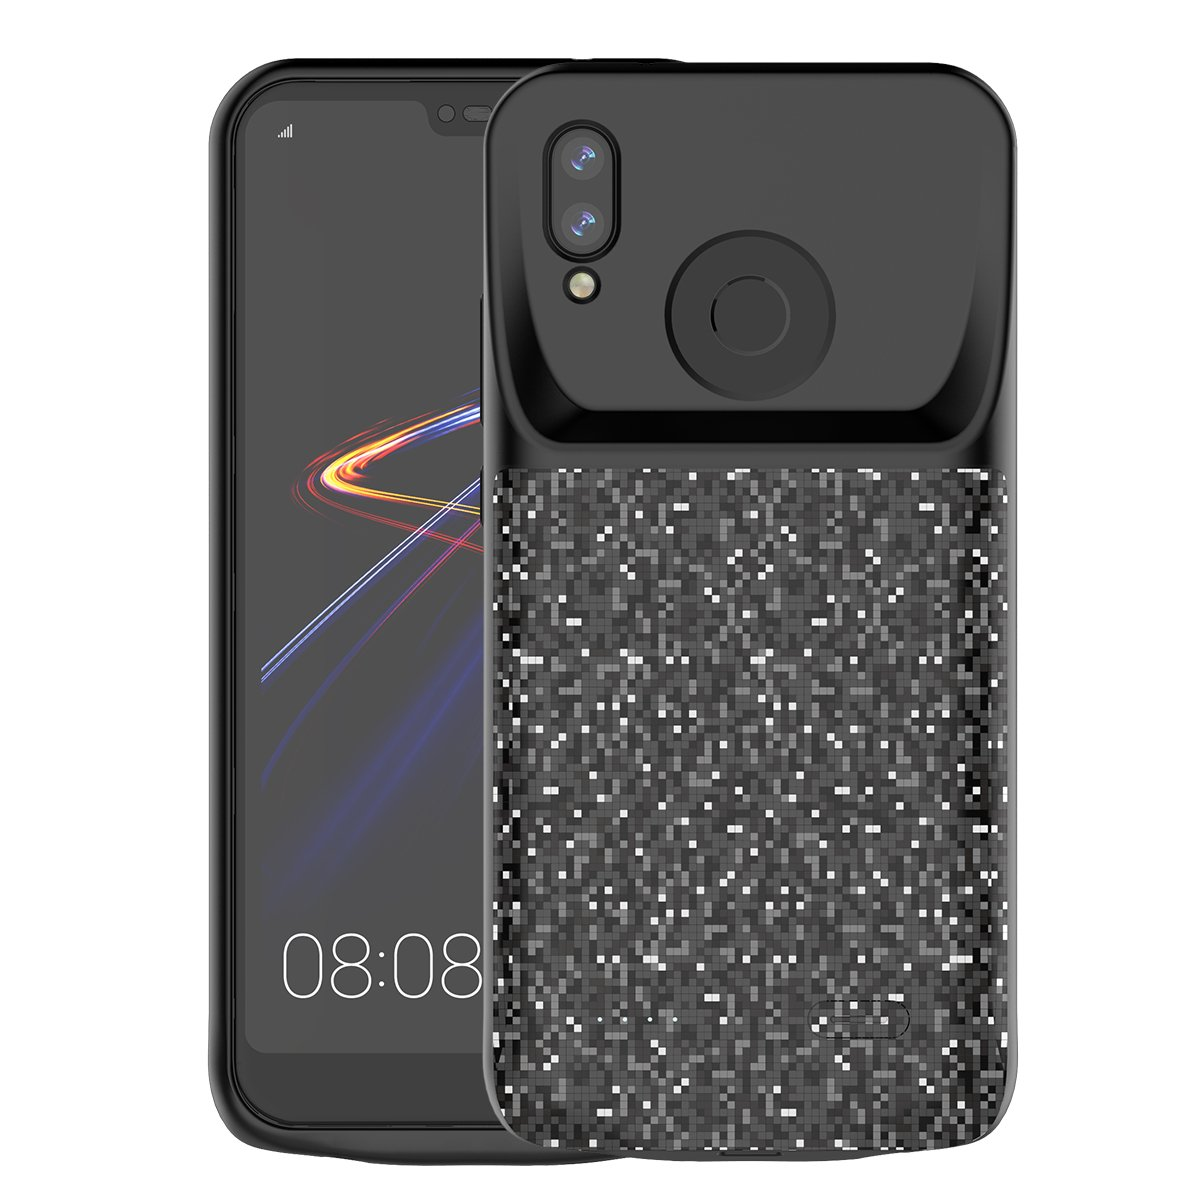 Torubia Huawei P20 Lite Rechargeable Battery Case Charger Cover, Shake Dust Dirt Proof Case Compatible with Huawei P20 Lite - Black